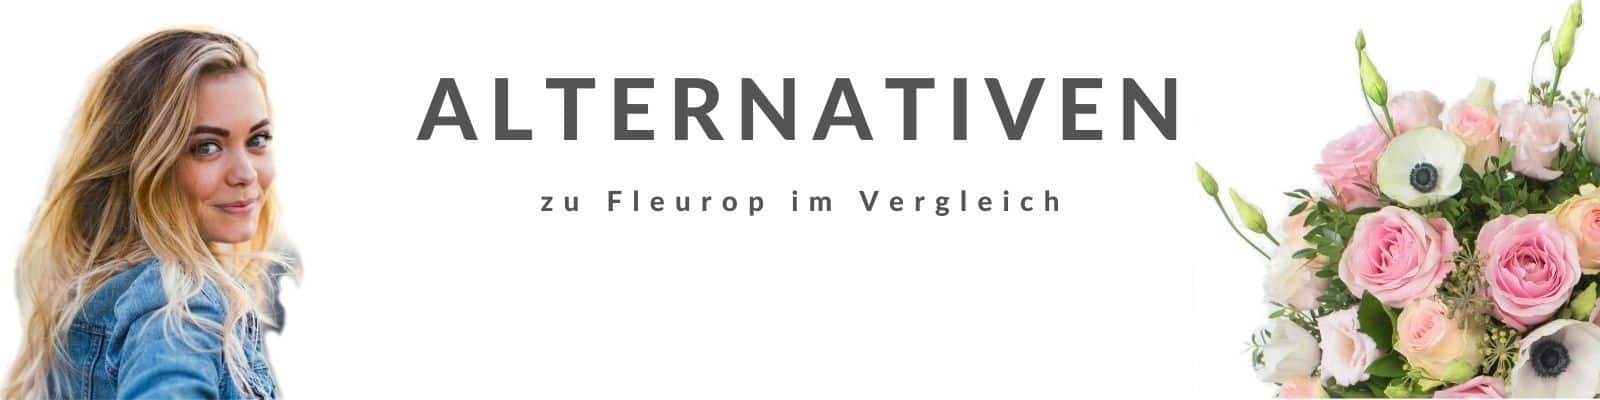 Fleurop Alternativen - Alternative zu Fleurop